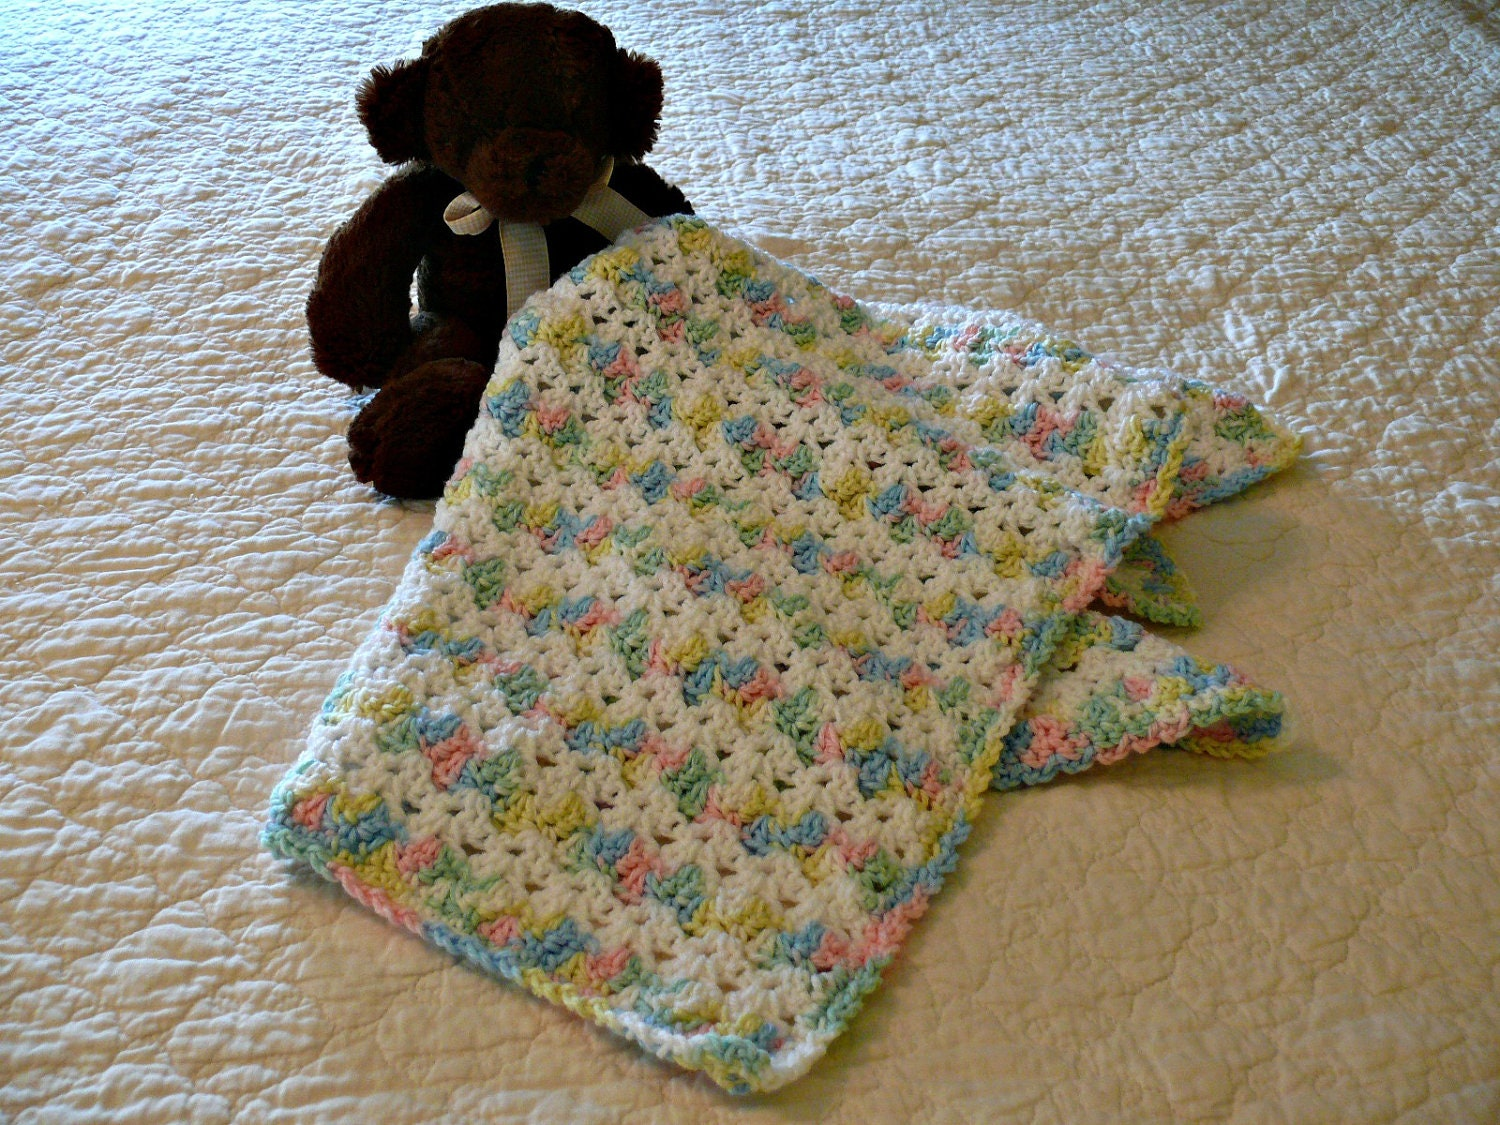 Crochet Afghan Patterns With Variegated Yarn : Crochet Baby Afghan White and Pastel Variegated by ...